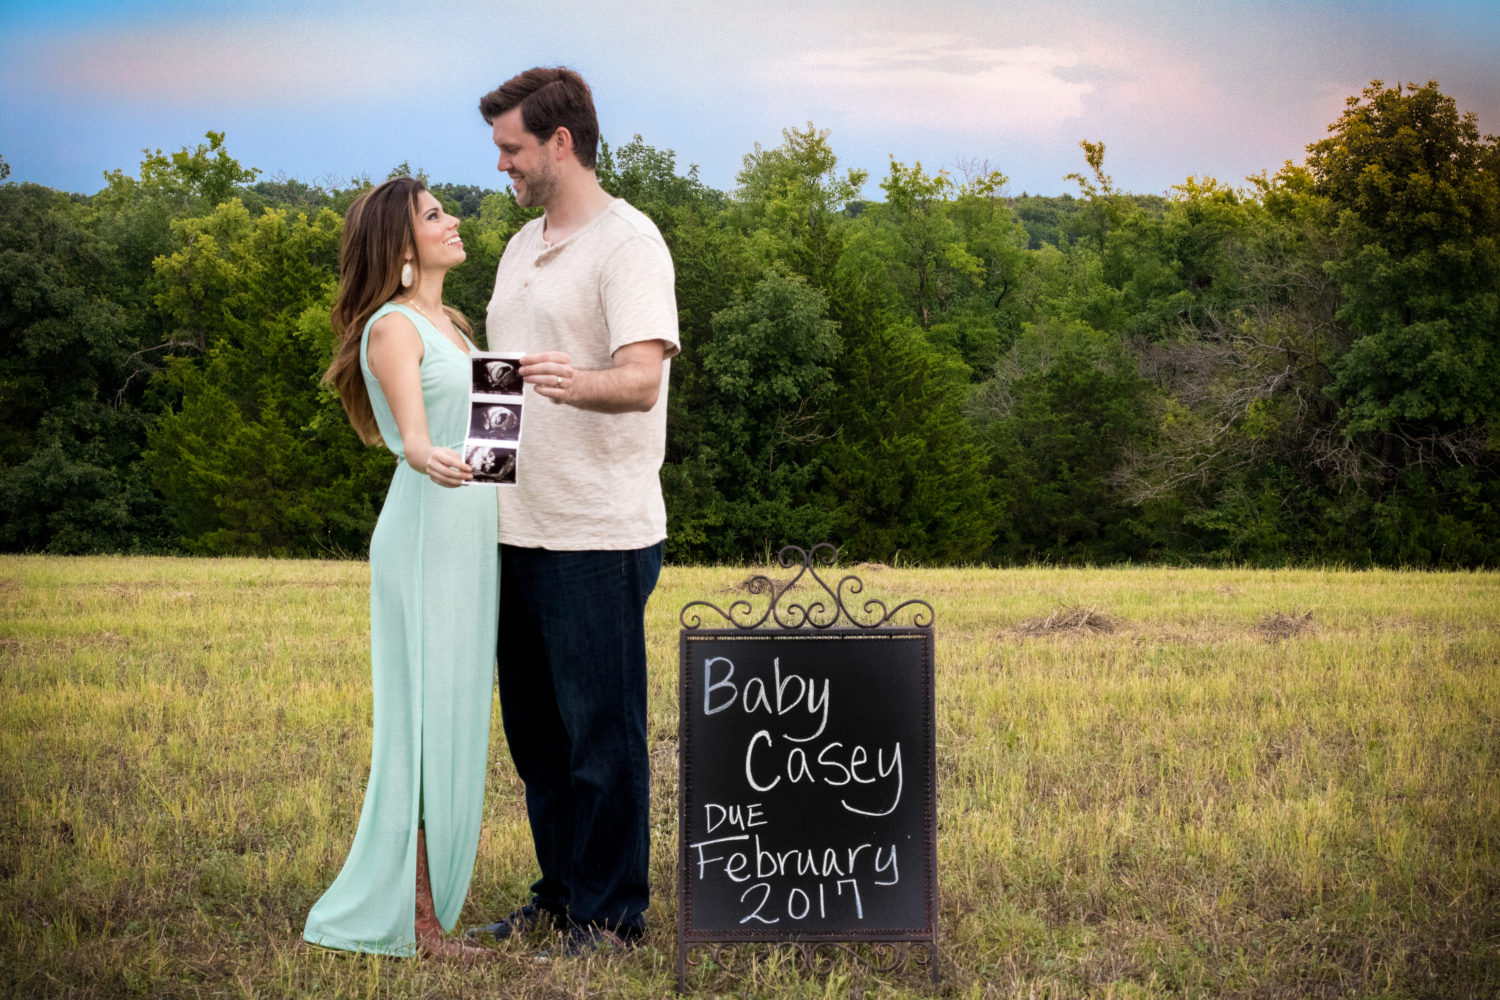 Baby Casey Announcement Sunset Ultrasound